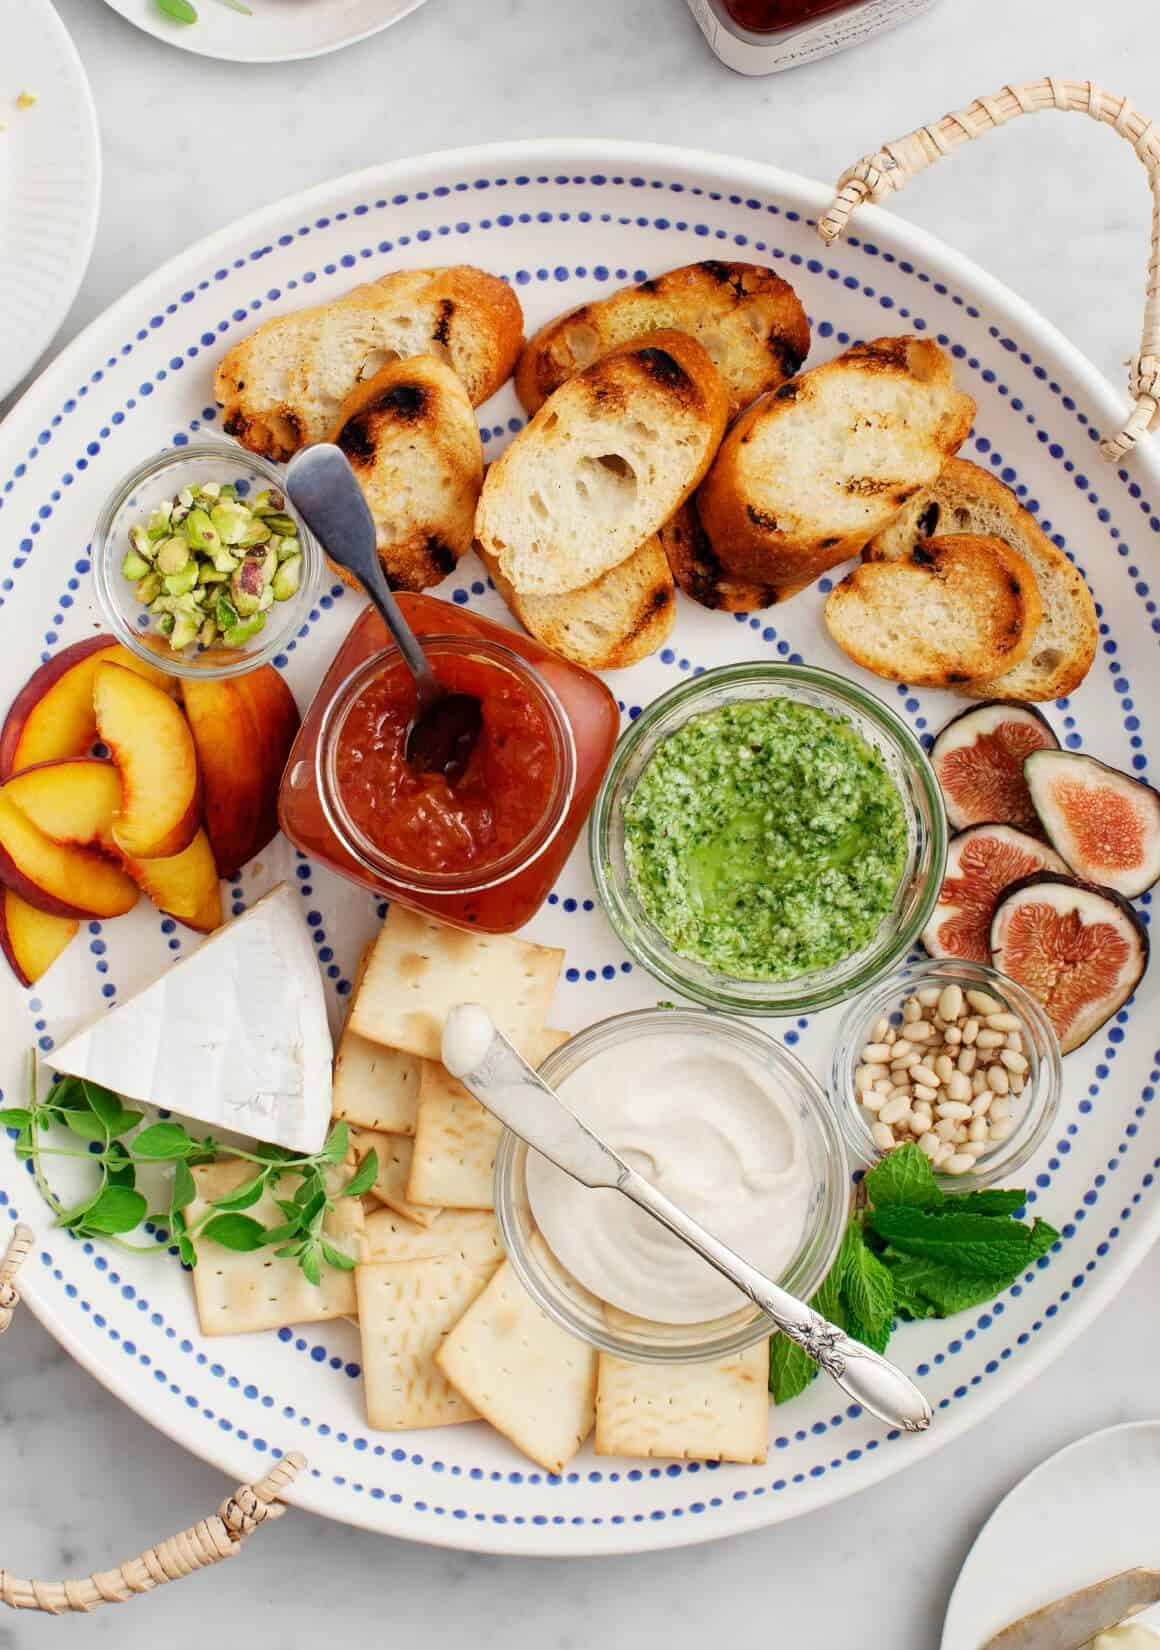 Crostini platter with toppings